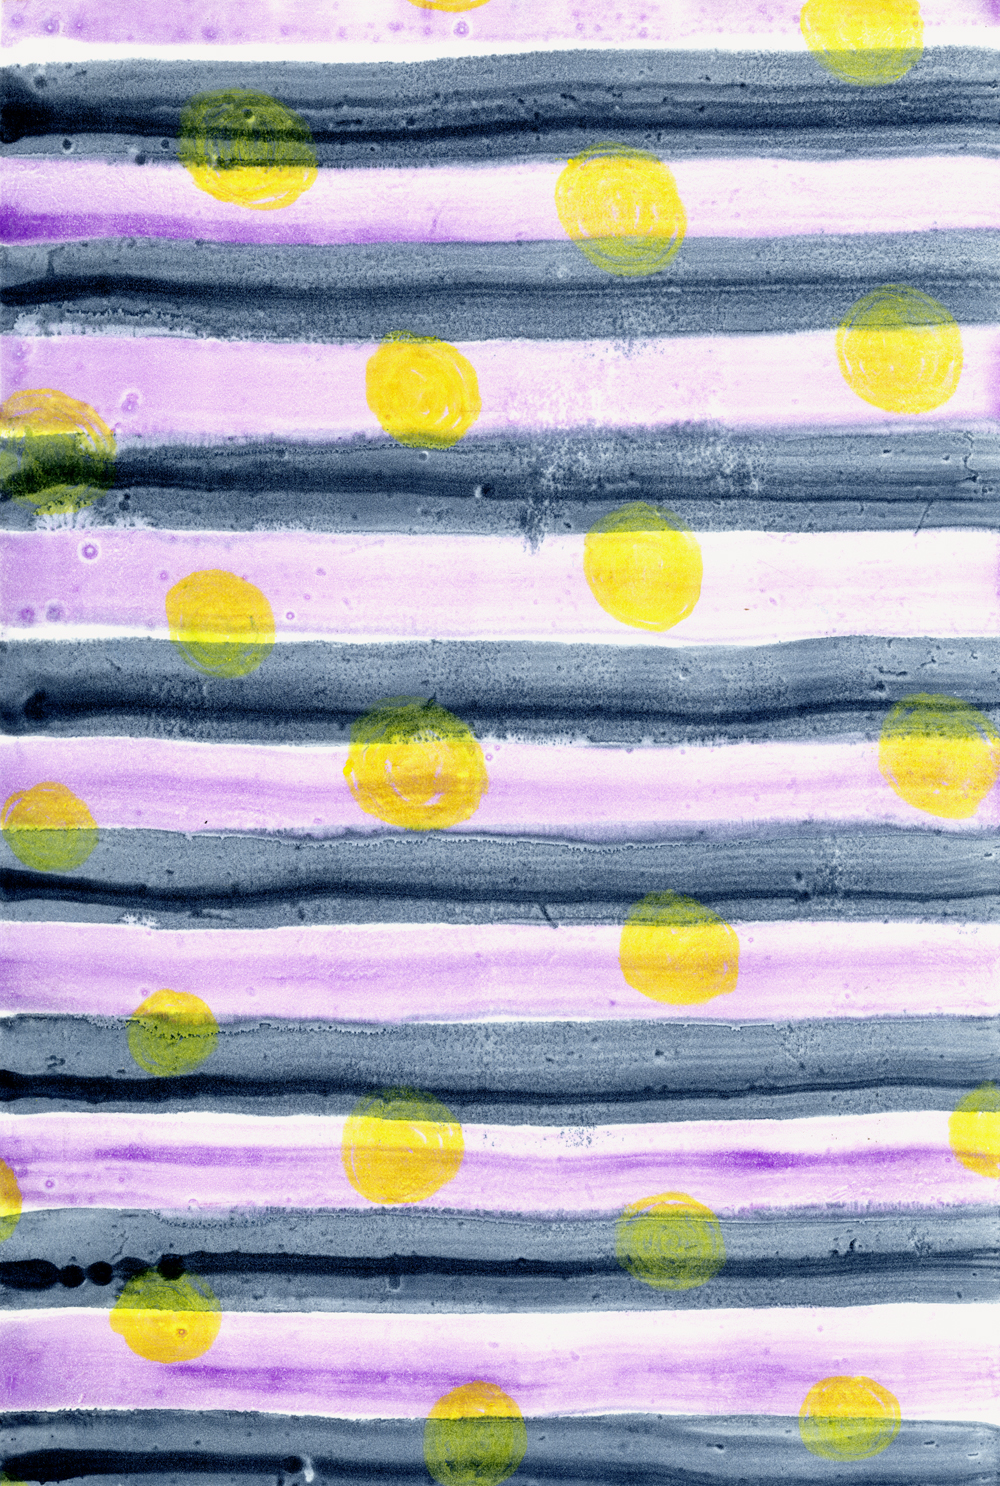 - Indigo StripesWatercolor monoprint on Somerset paper14.5 x 10 inches2018